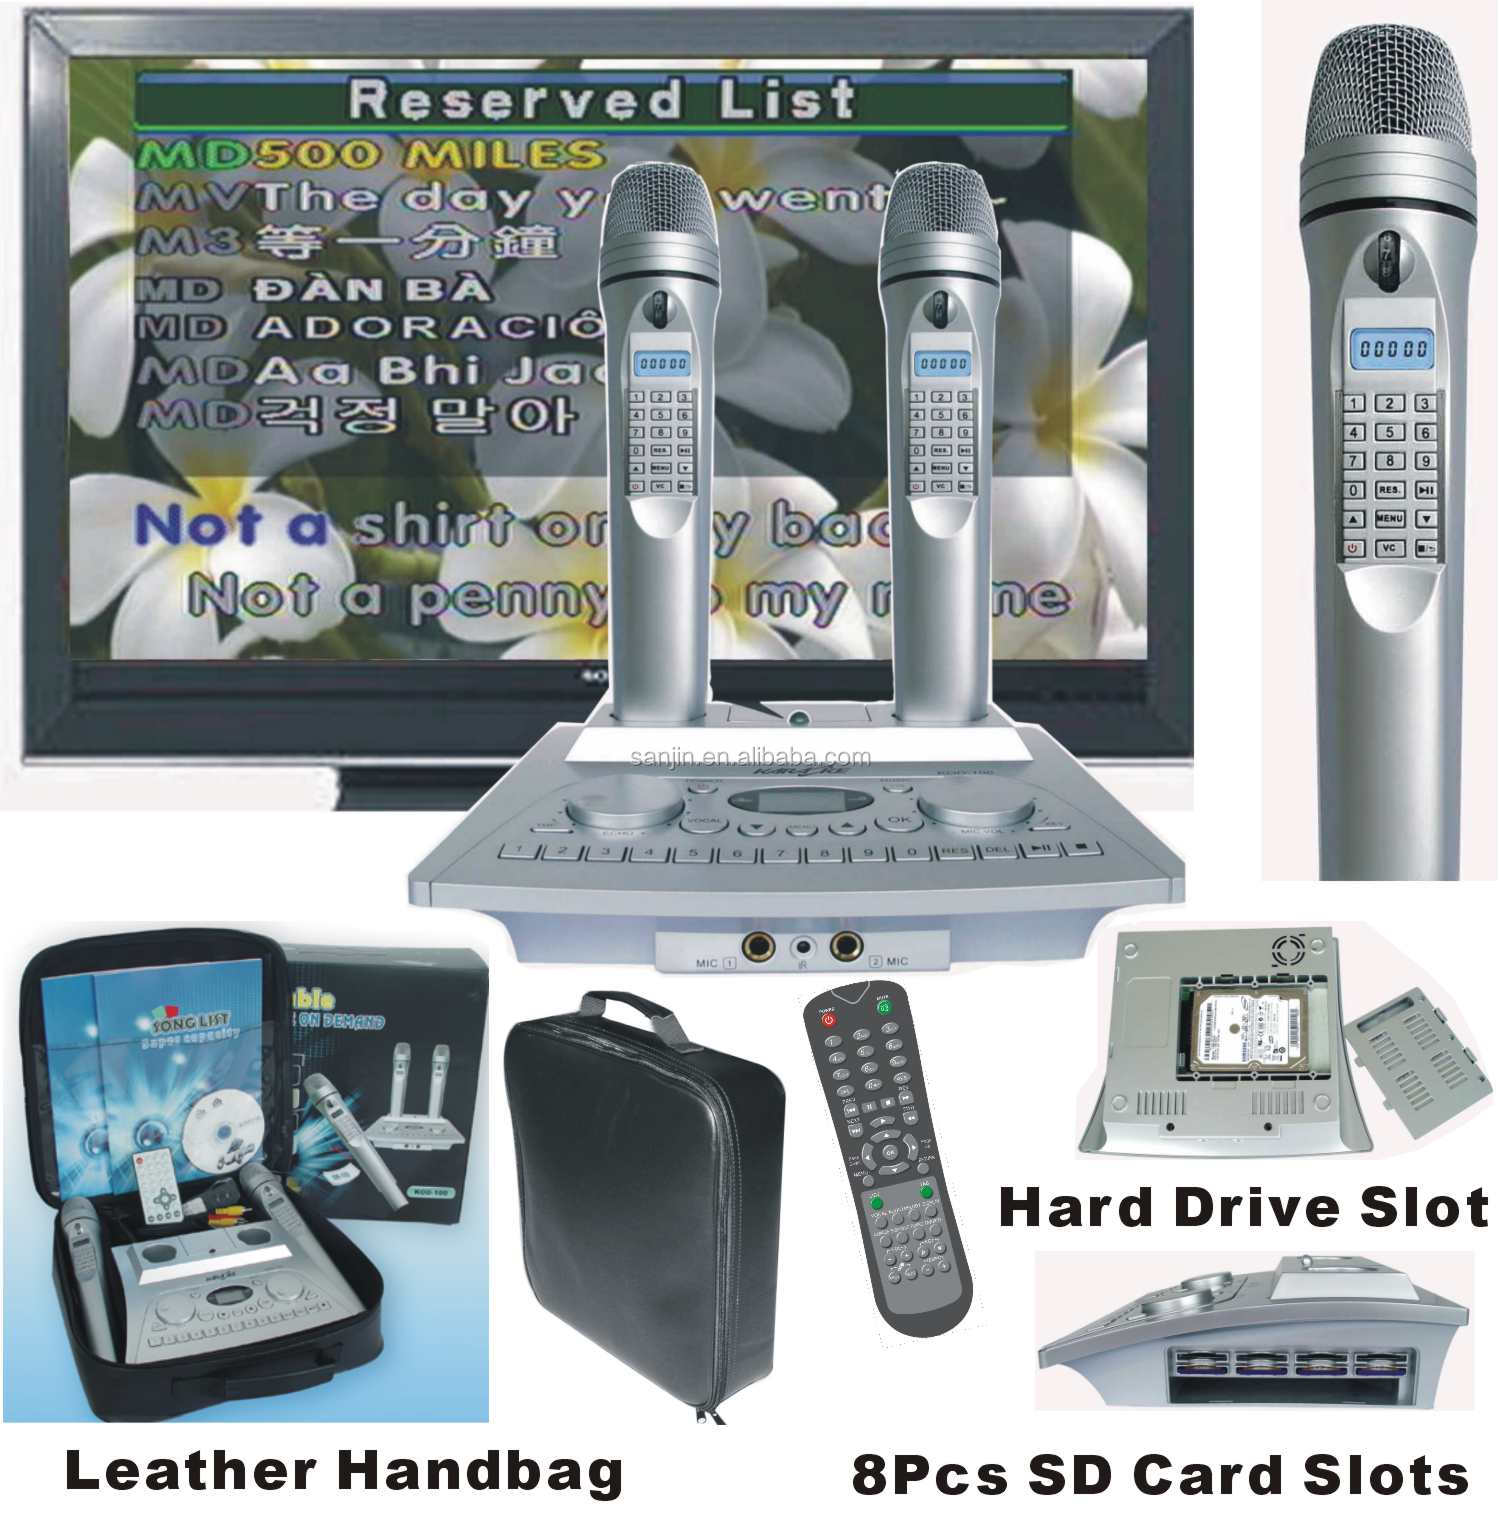 Hard Disk Karaoke player + Wireless Magic Digit Microphone + 8Pcs SD Song Card Slots & 160GB Hard Disk (opsional)